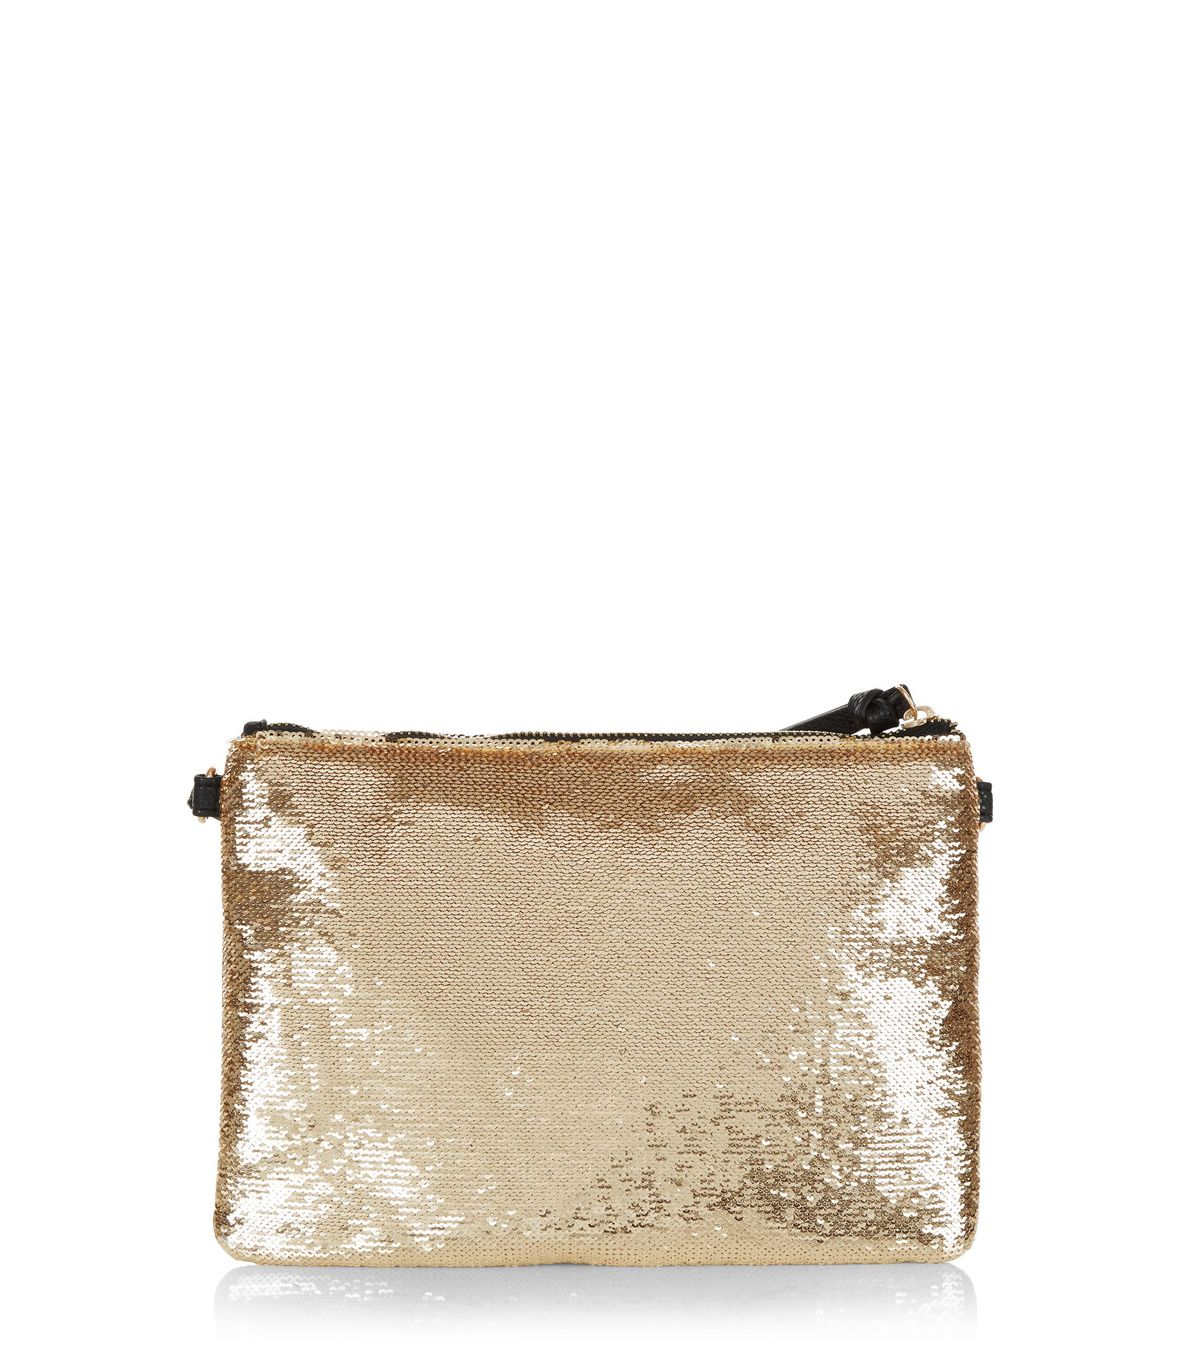 http://media.newlookassets.com/i/newlook/387605493D2/womens/bags-and-purses/cross-body-bags/gold-sequin-across-body-bag/?$new_pdp_szoom_image_1200$